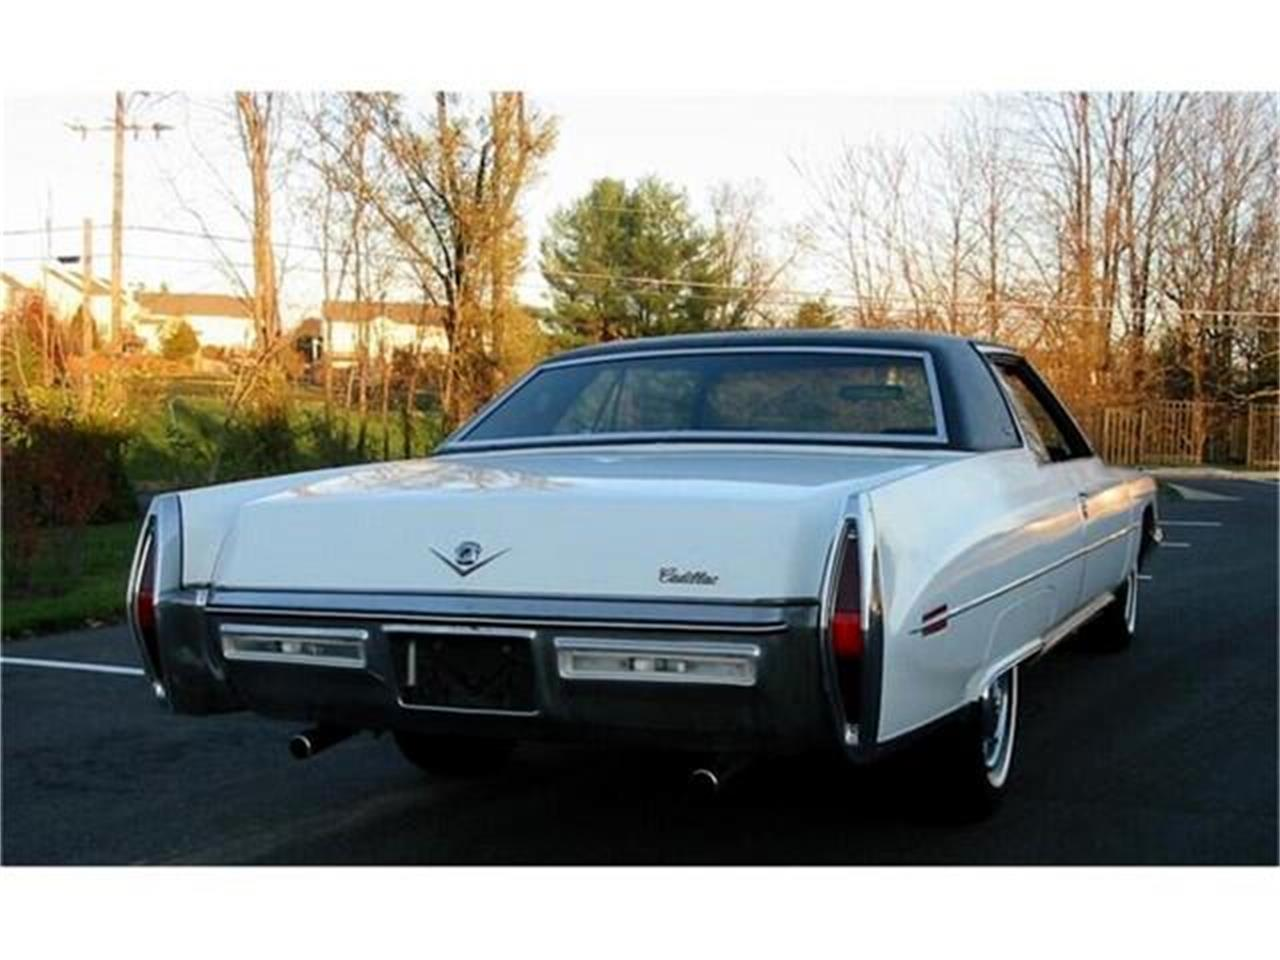 1972 Cadillac Coupe DeVille (CC-1415897) for sale in Harpers Ferry, West Virginia